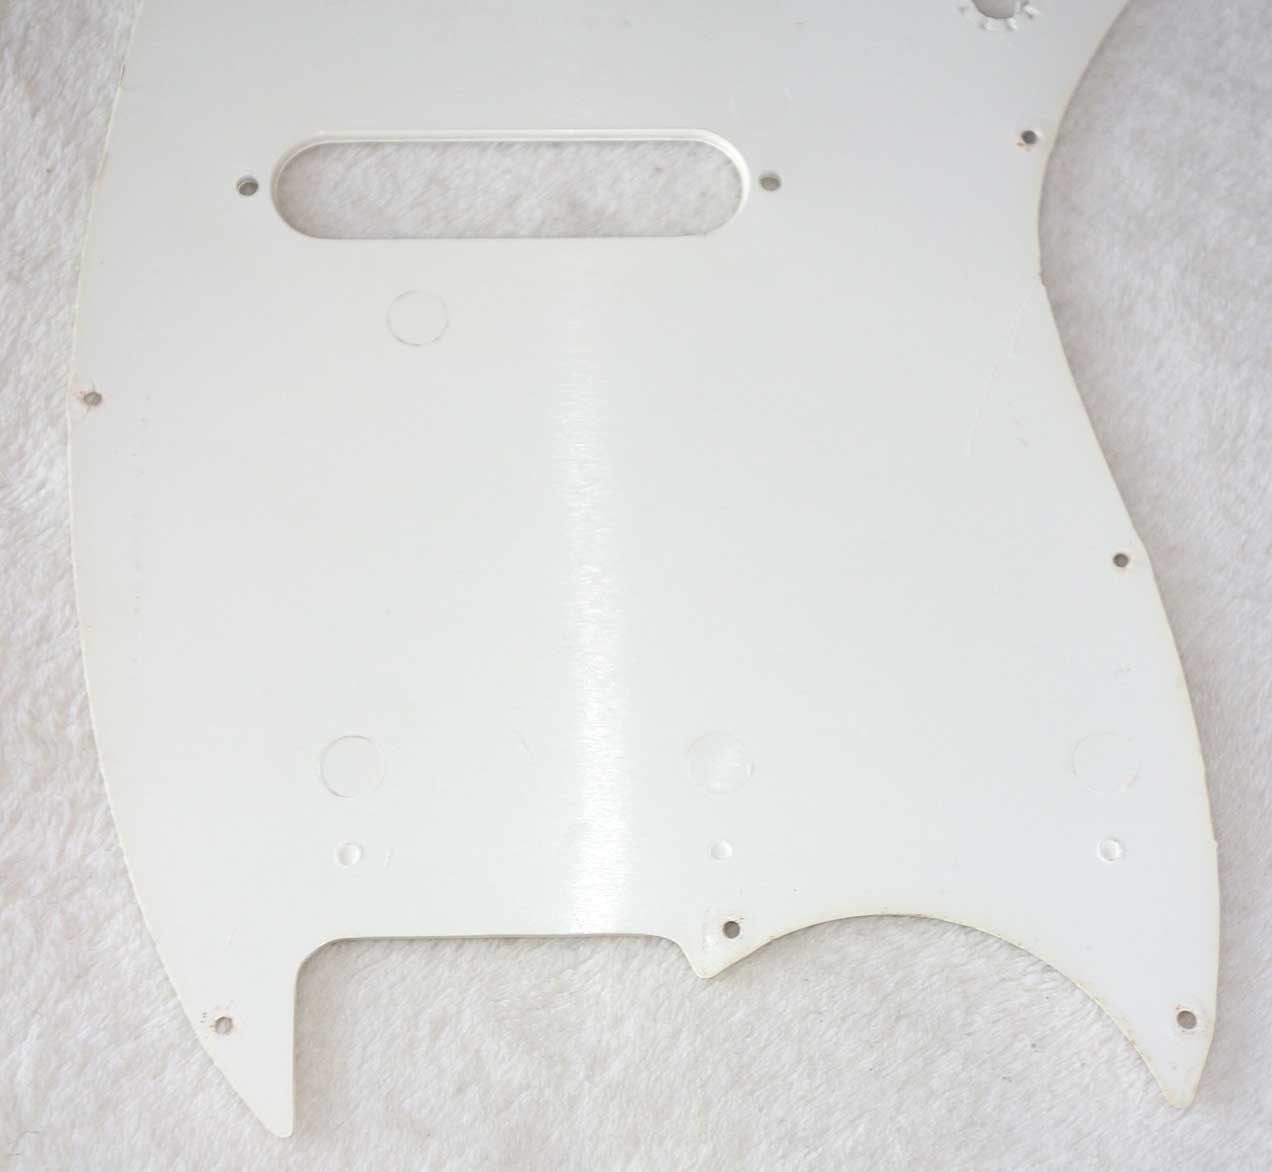 Vintage 1966 Kalamazoo KG-1 / KG-2 Pickguard for the single PUP late '60s KG-1 and KG-2 guitars